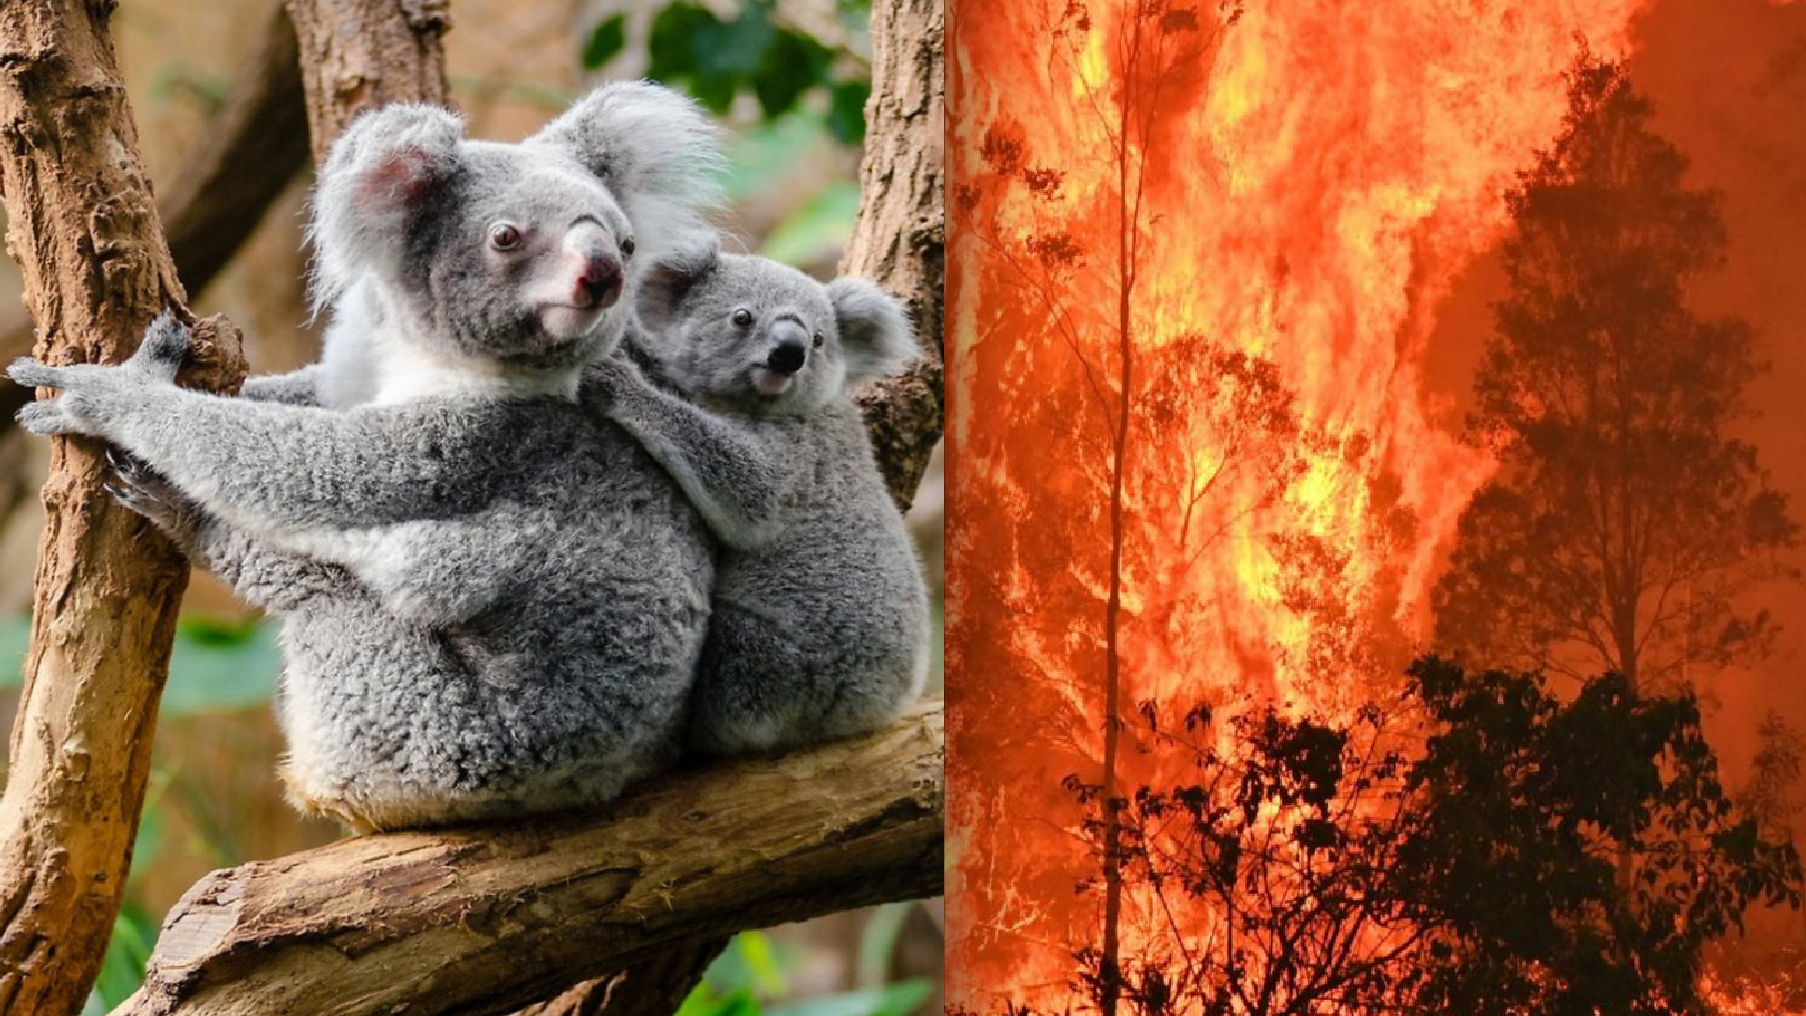 Koala Population Demolished, Thousands Killed Tragically in Sweeping Climate Fires, Imperiled Citizens Try Frantically to Help